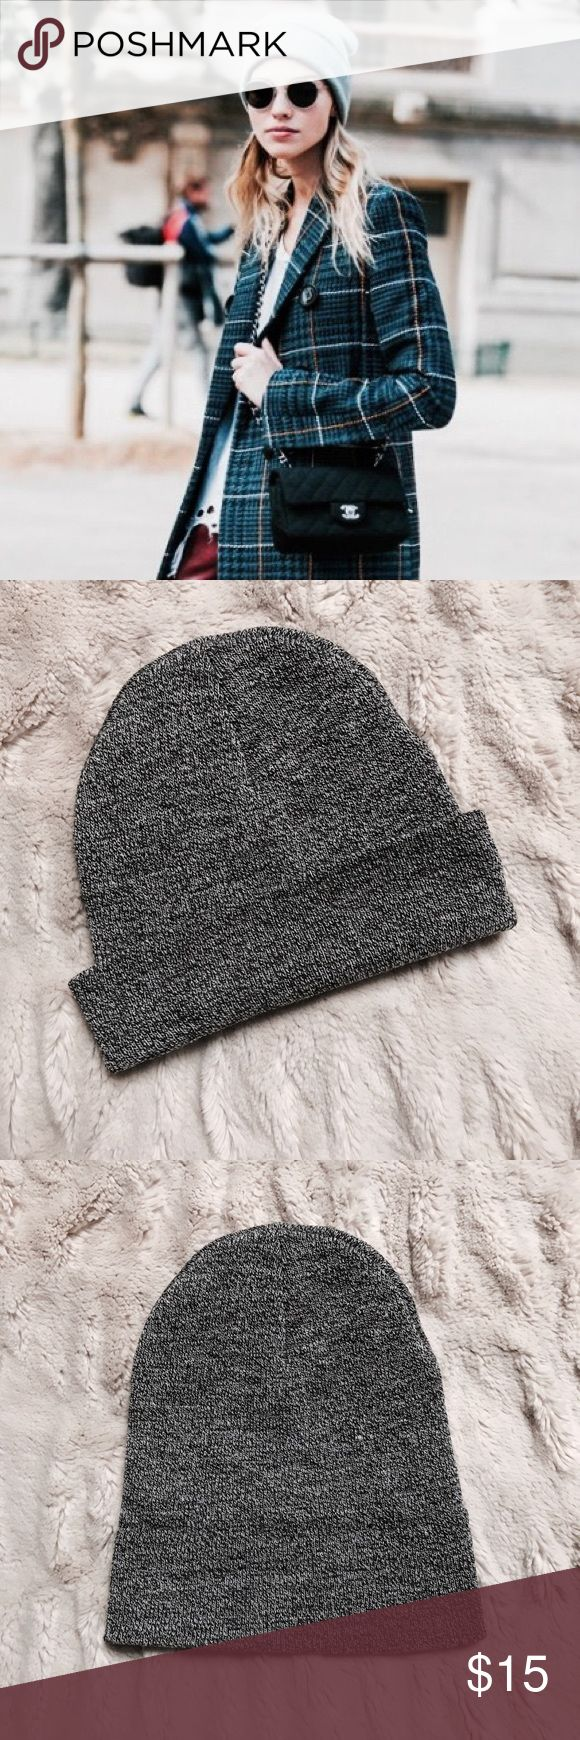 NWOT Grey Beanie New without tags - never worn. Grey beanie from Topshop. First image is to show wear. Can be worn rolled up or slouchy. Topshop Accessories Hats